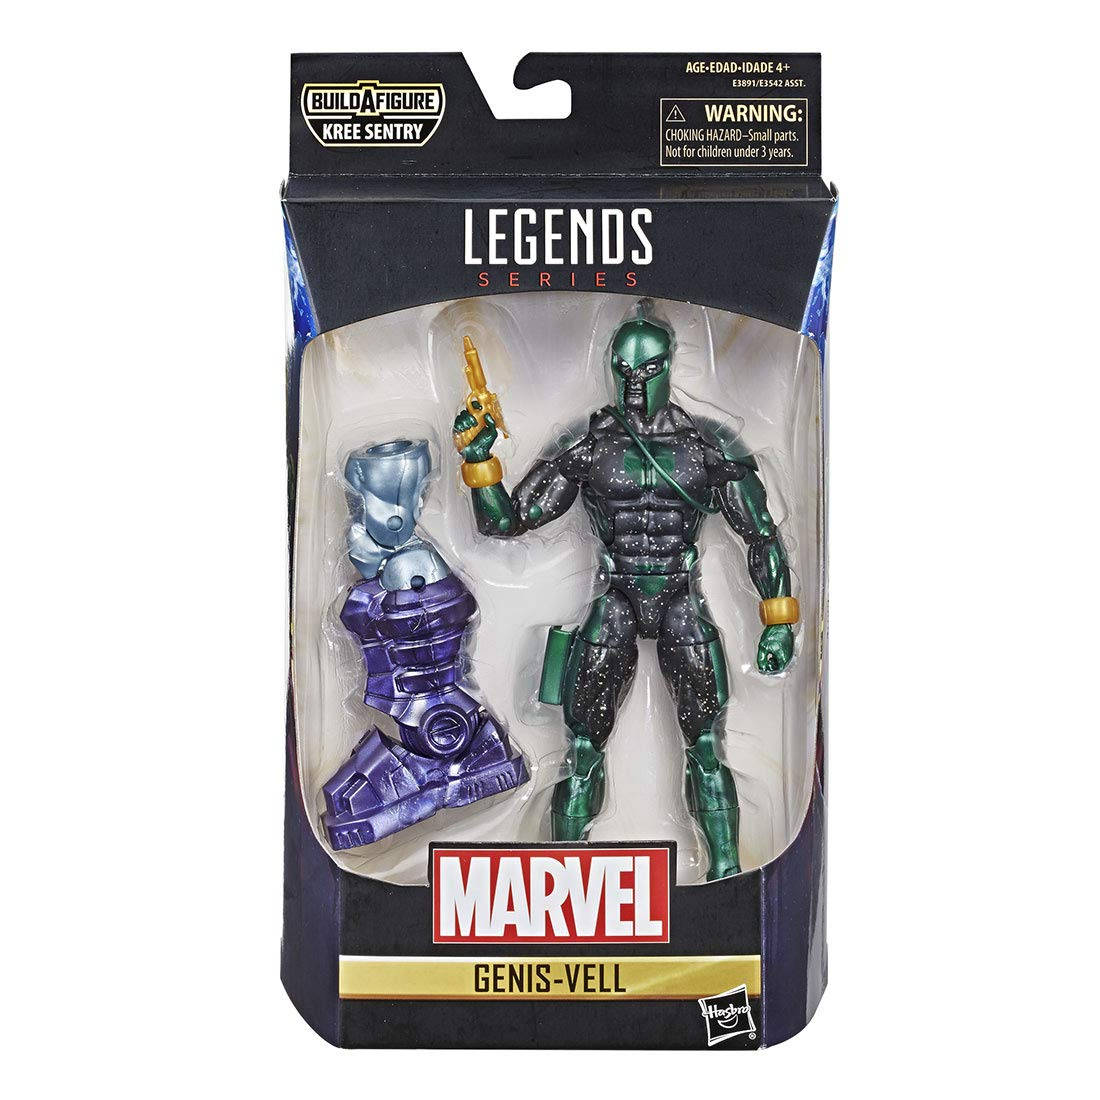 Boneco Marvel Legends Genis-Vell  -  Hasbro E3542